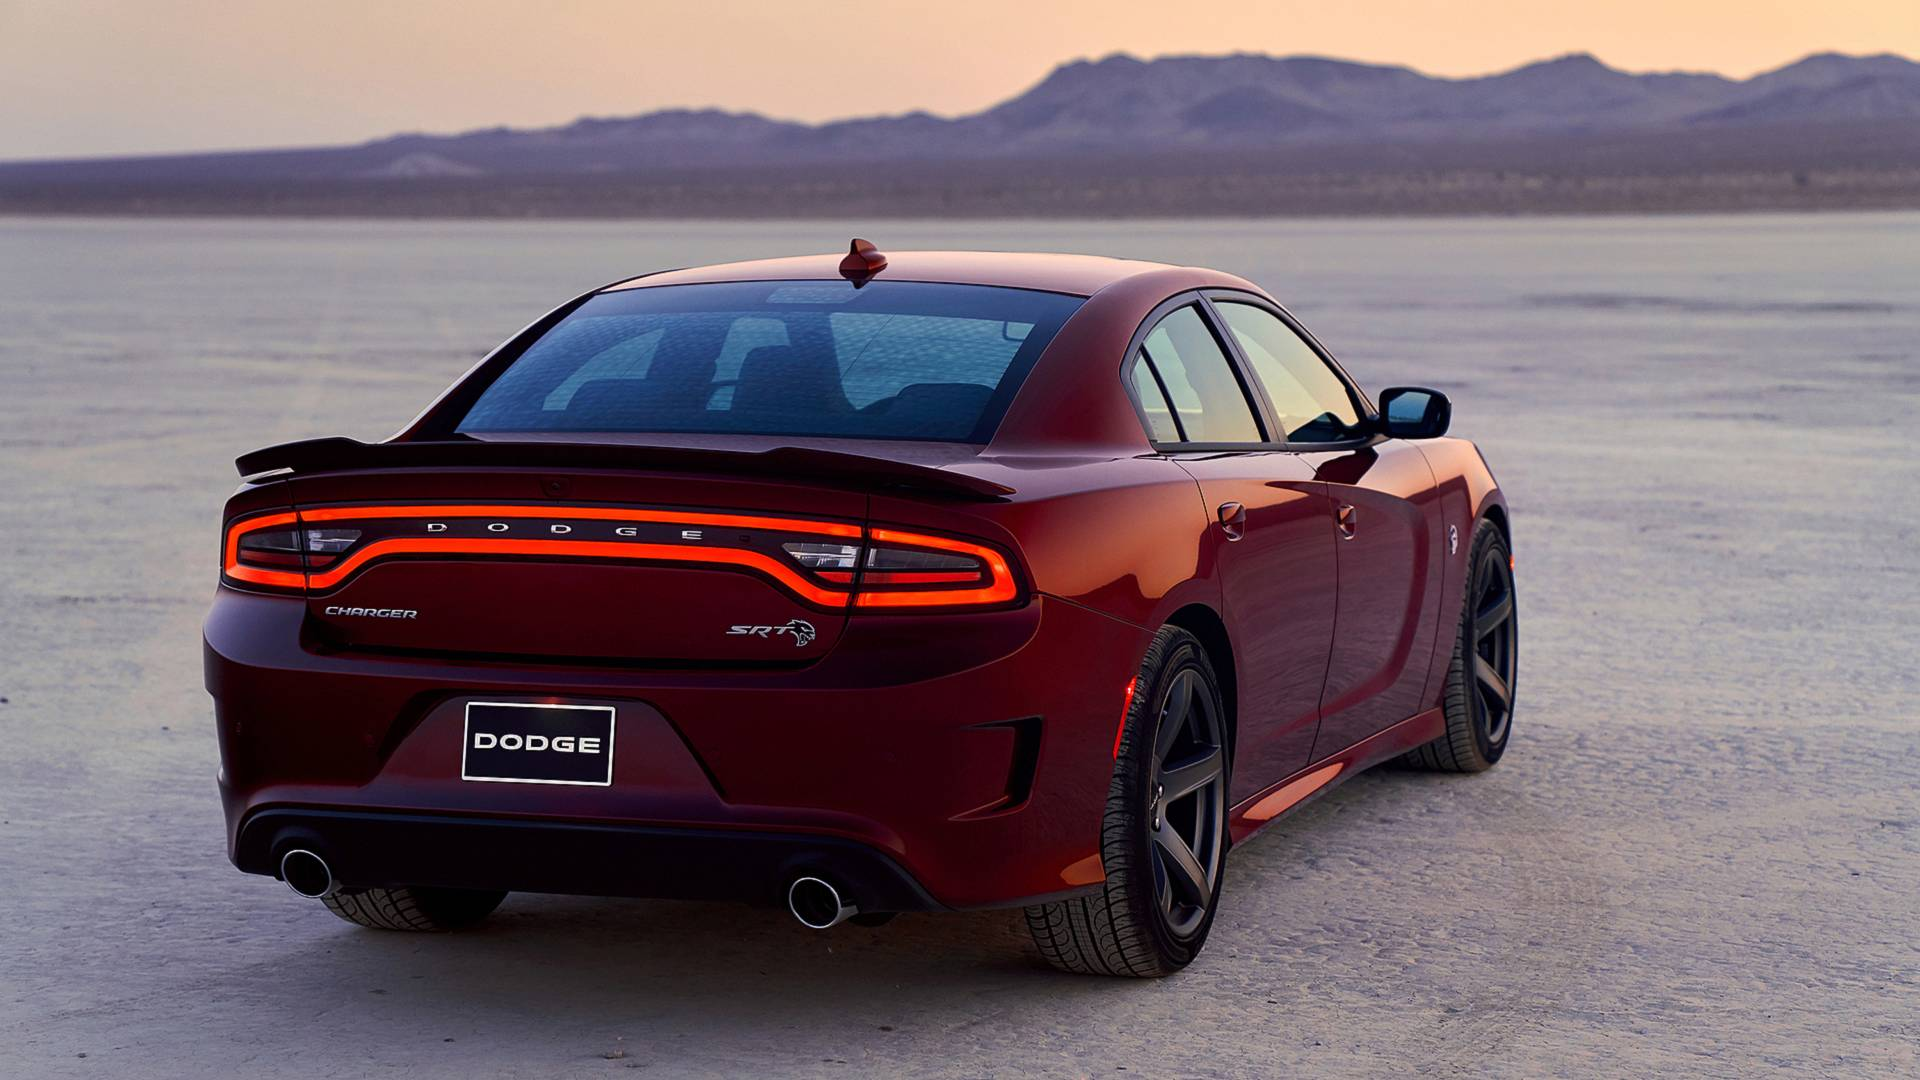 22 New 2019 Dodge Charger Srt8 Hellcat Photos